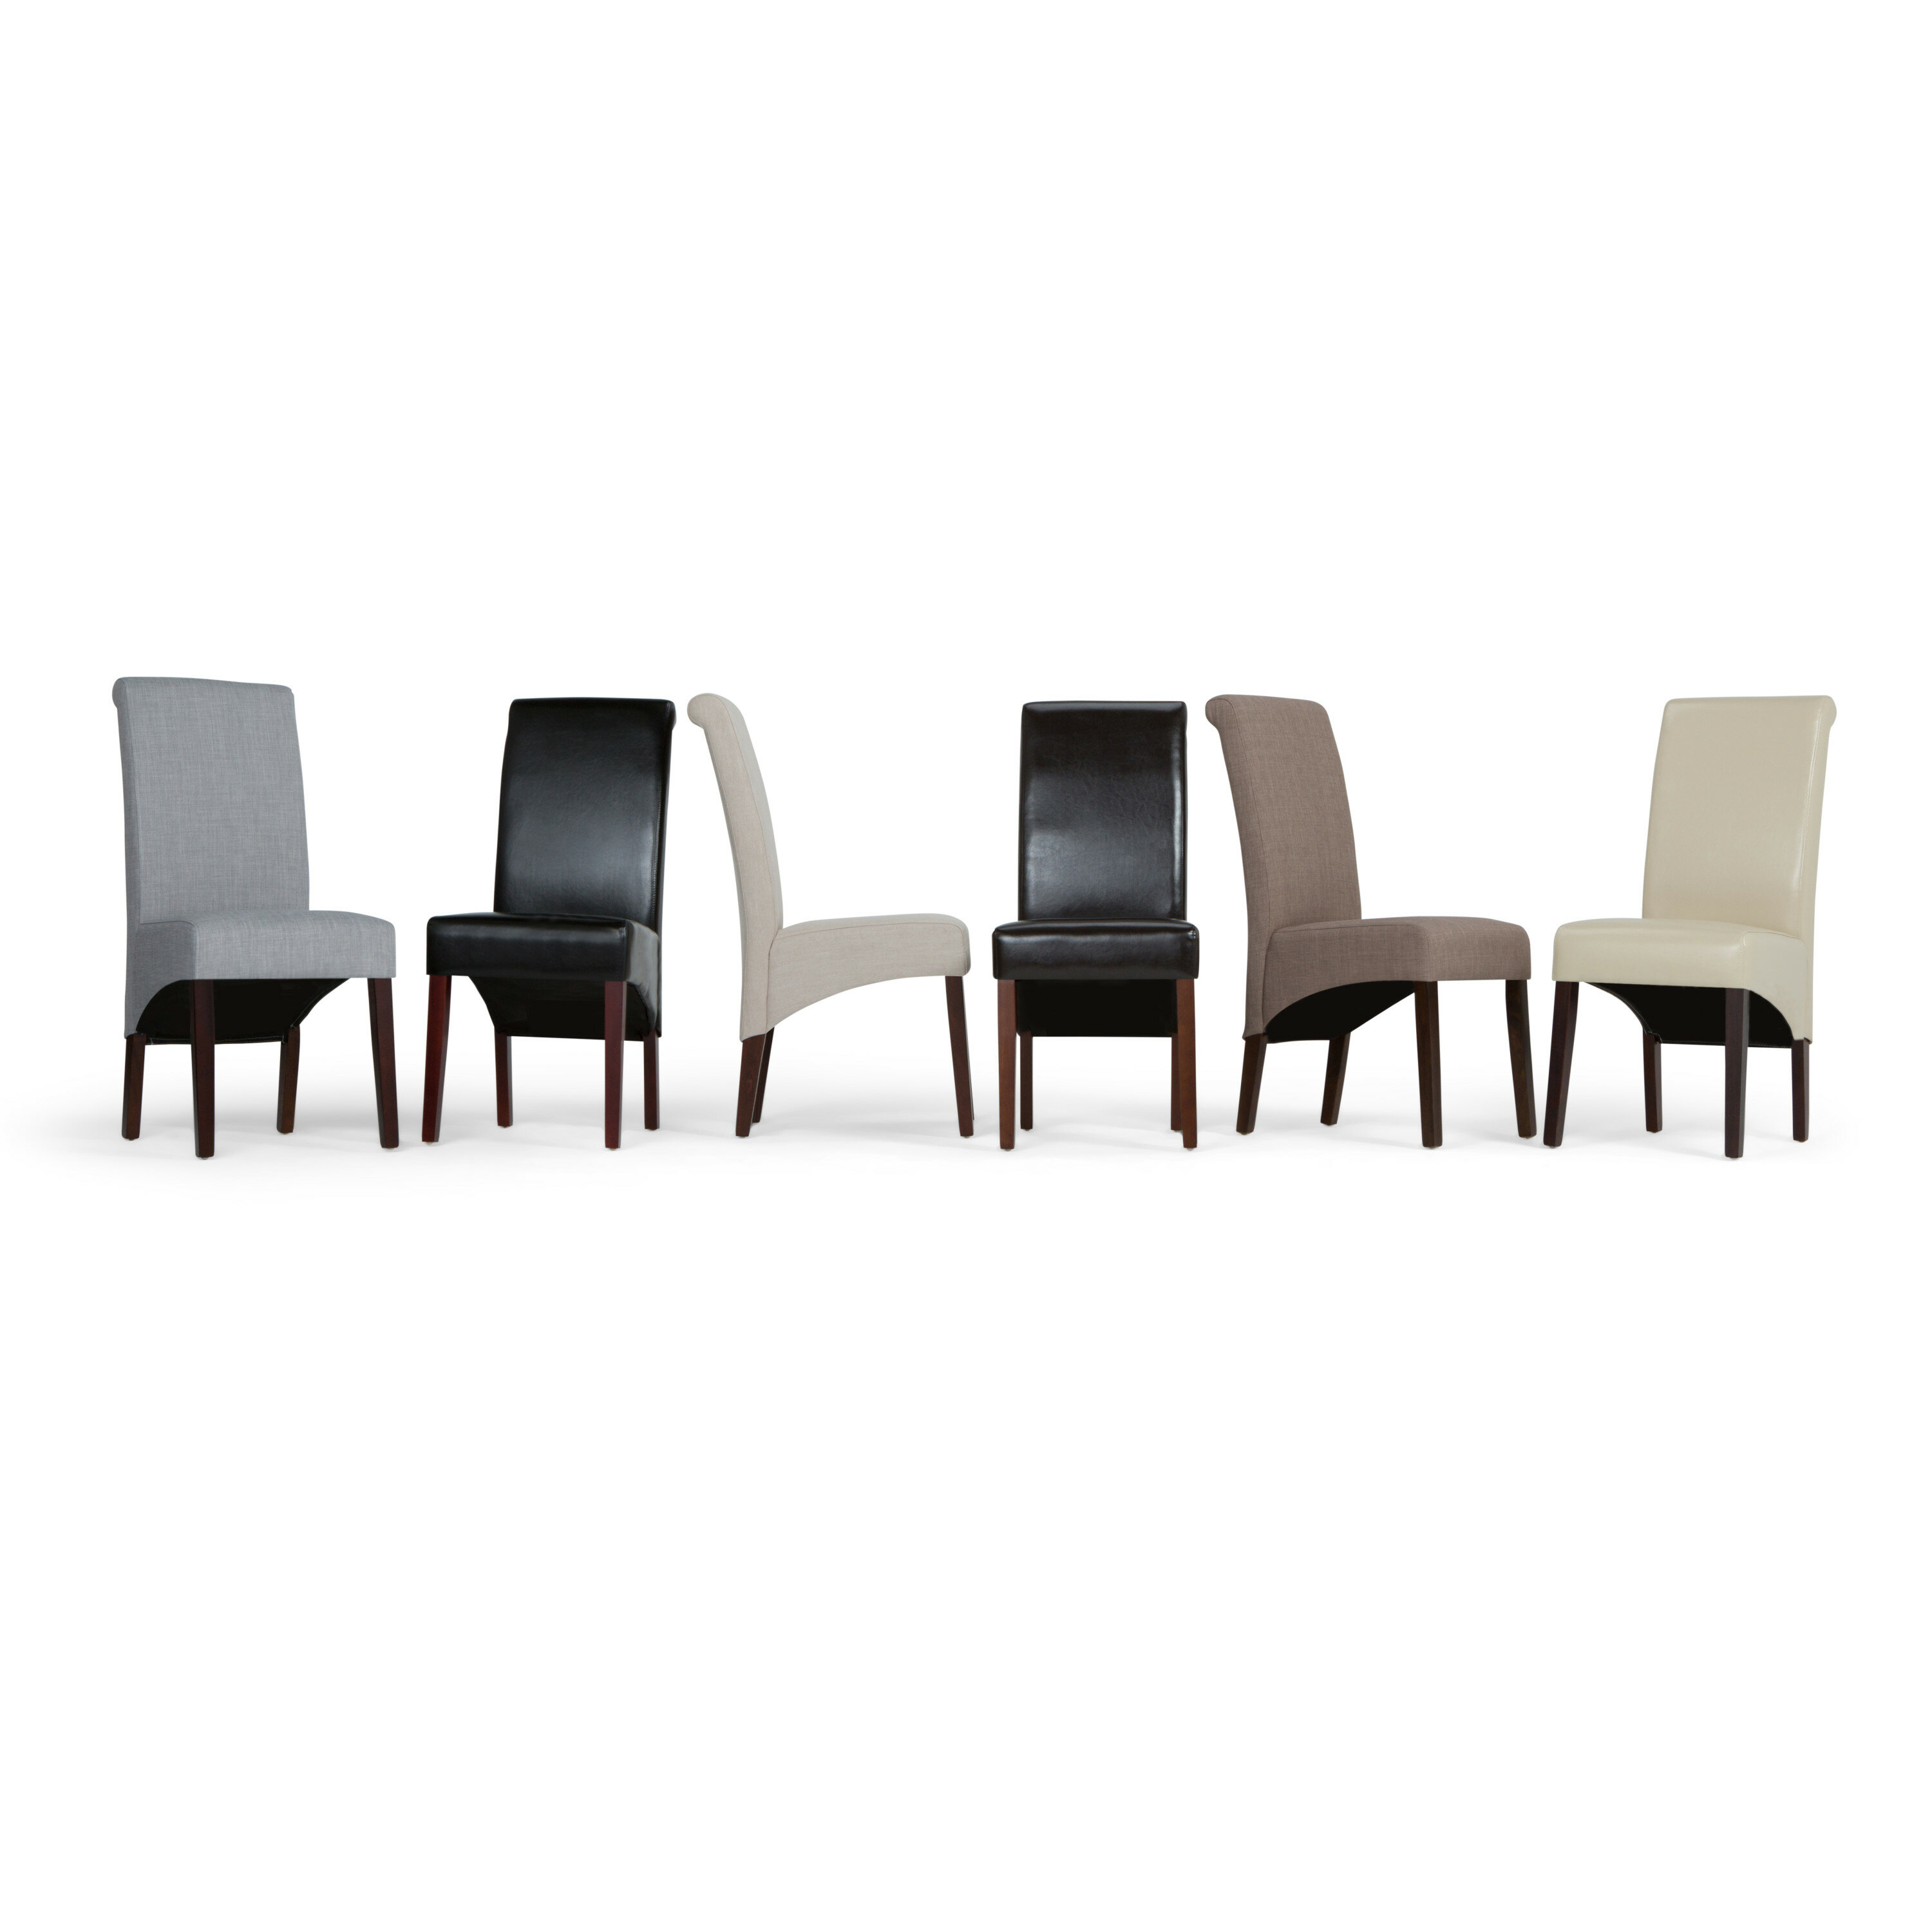 Swell Agnon Deluxe Upholstered Dining Chair Creativecarmelina Interior Chair Design Creativecarmelinacom